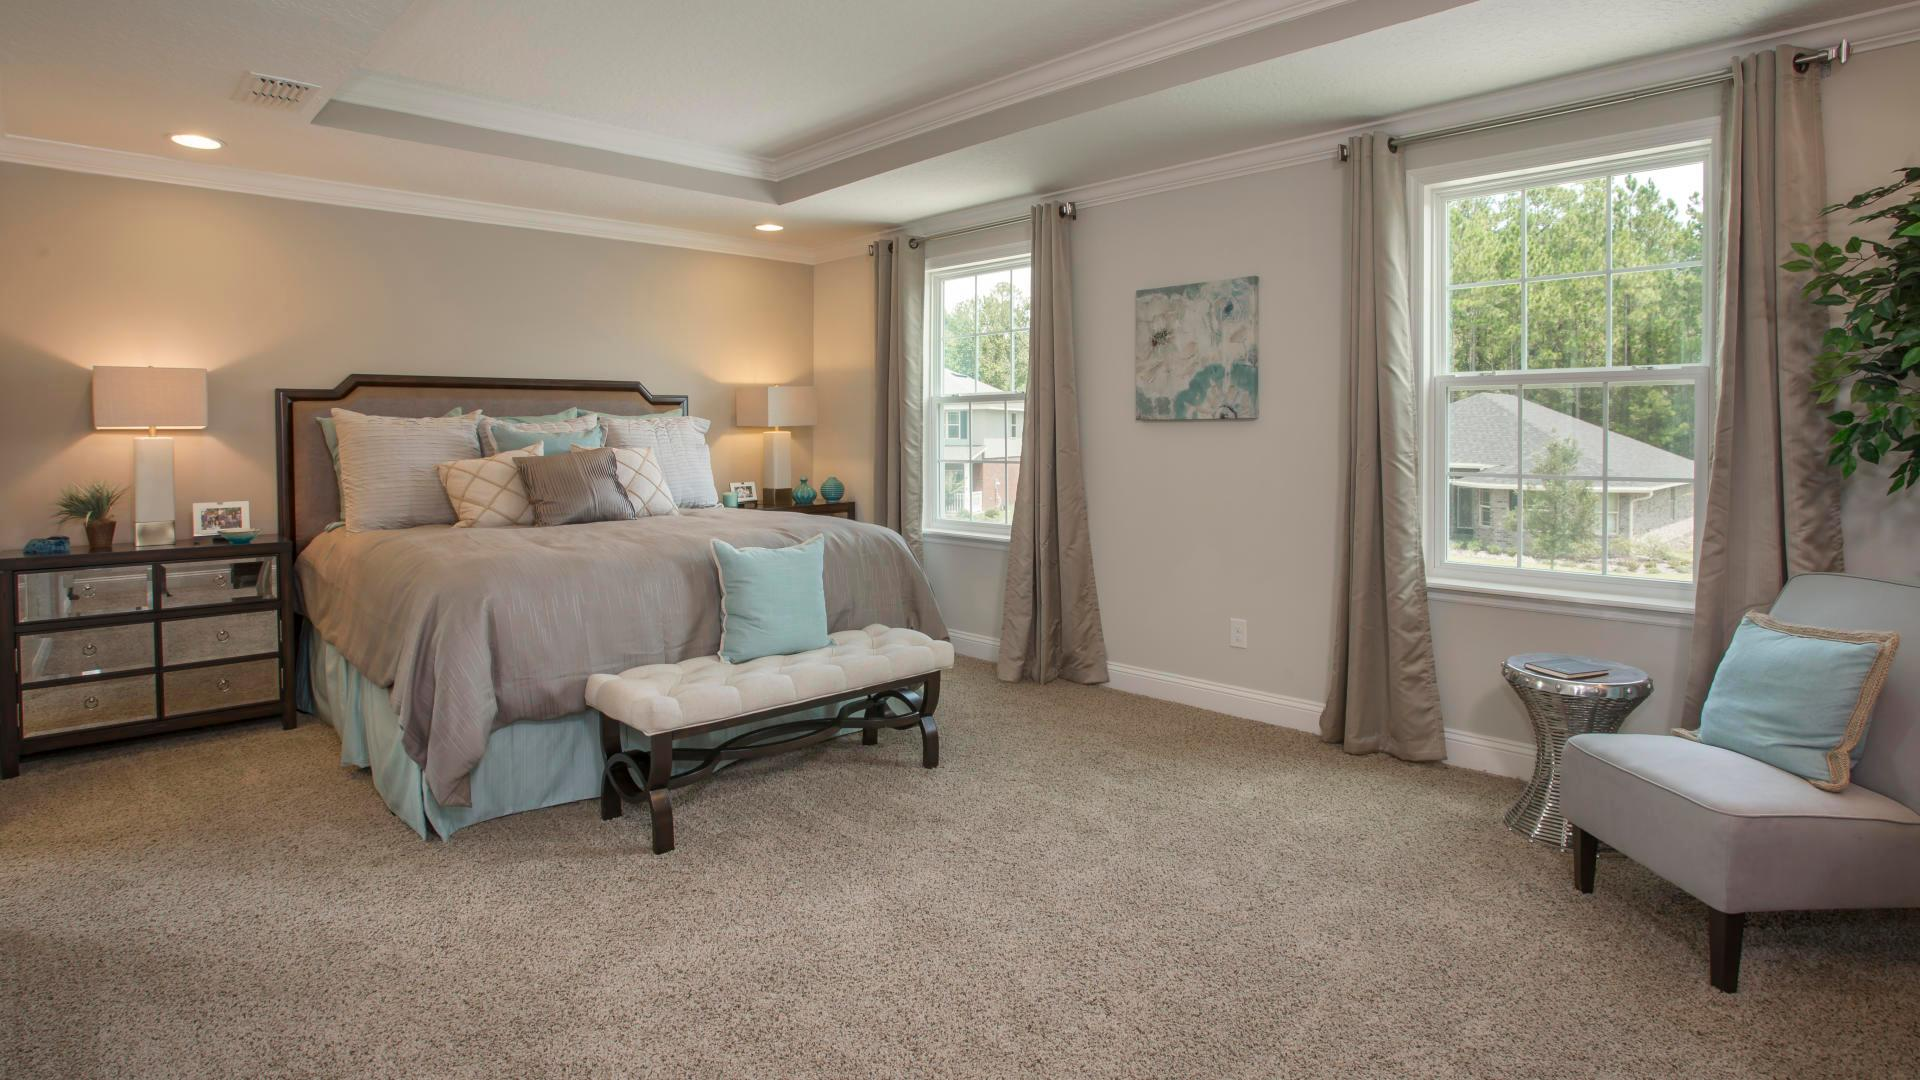 Bedroom featured in the Baybury By Maronda Homes in Martin-St. Lucie-Okeechobee Counties, FL